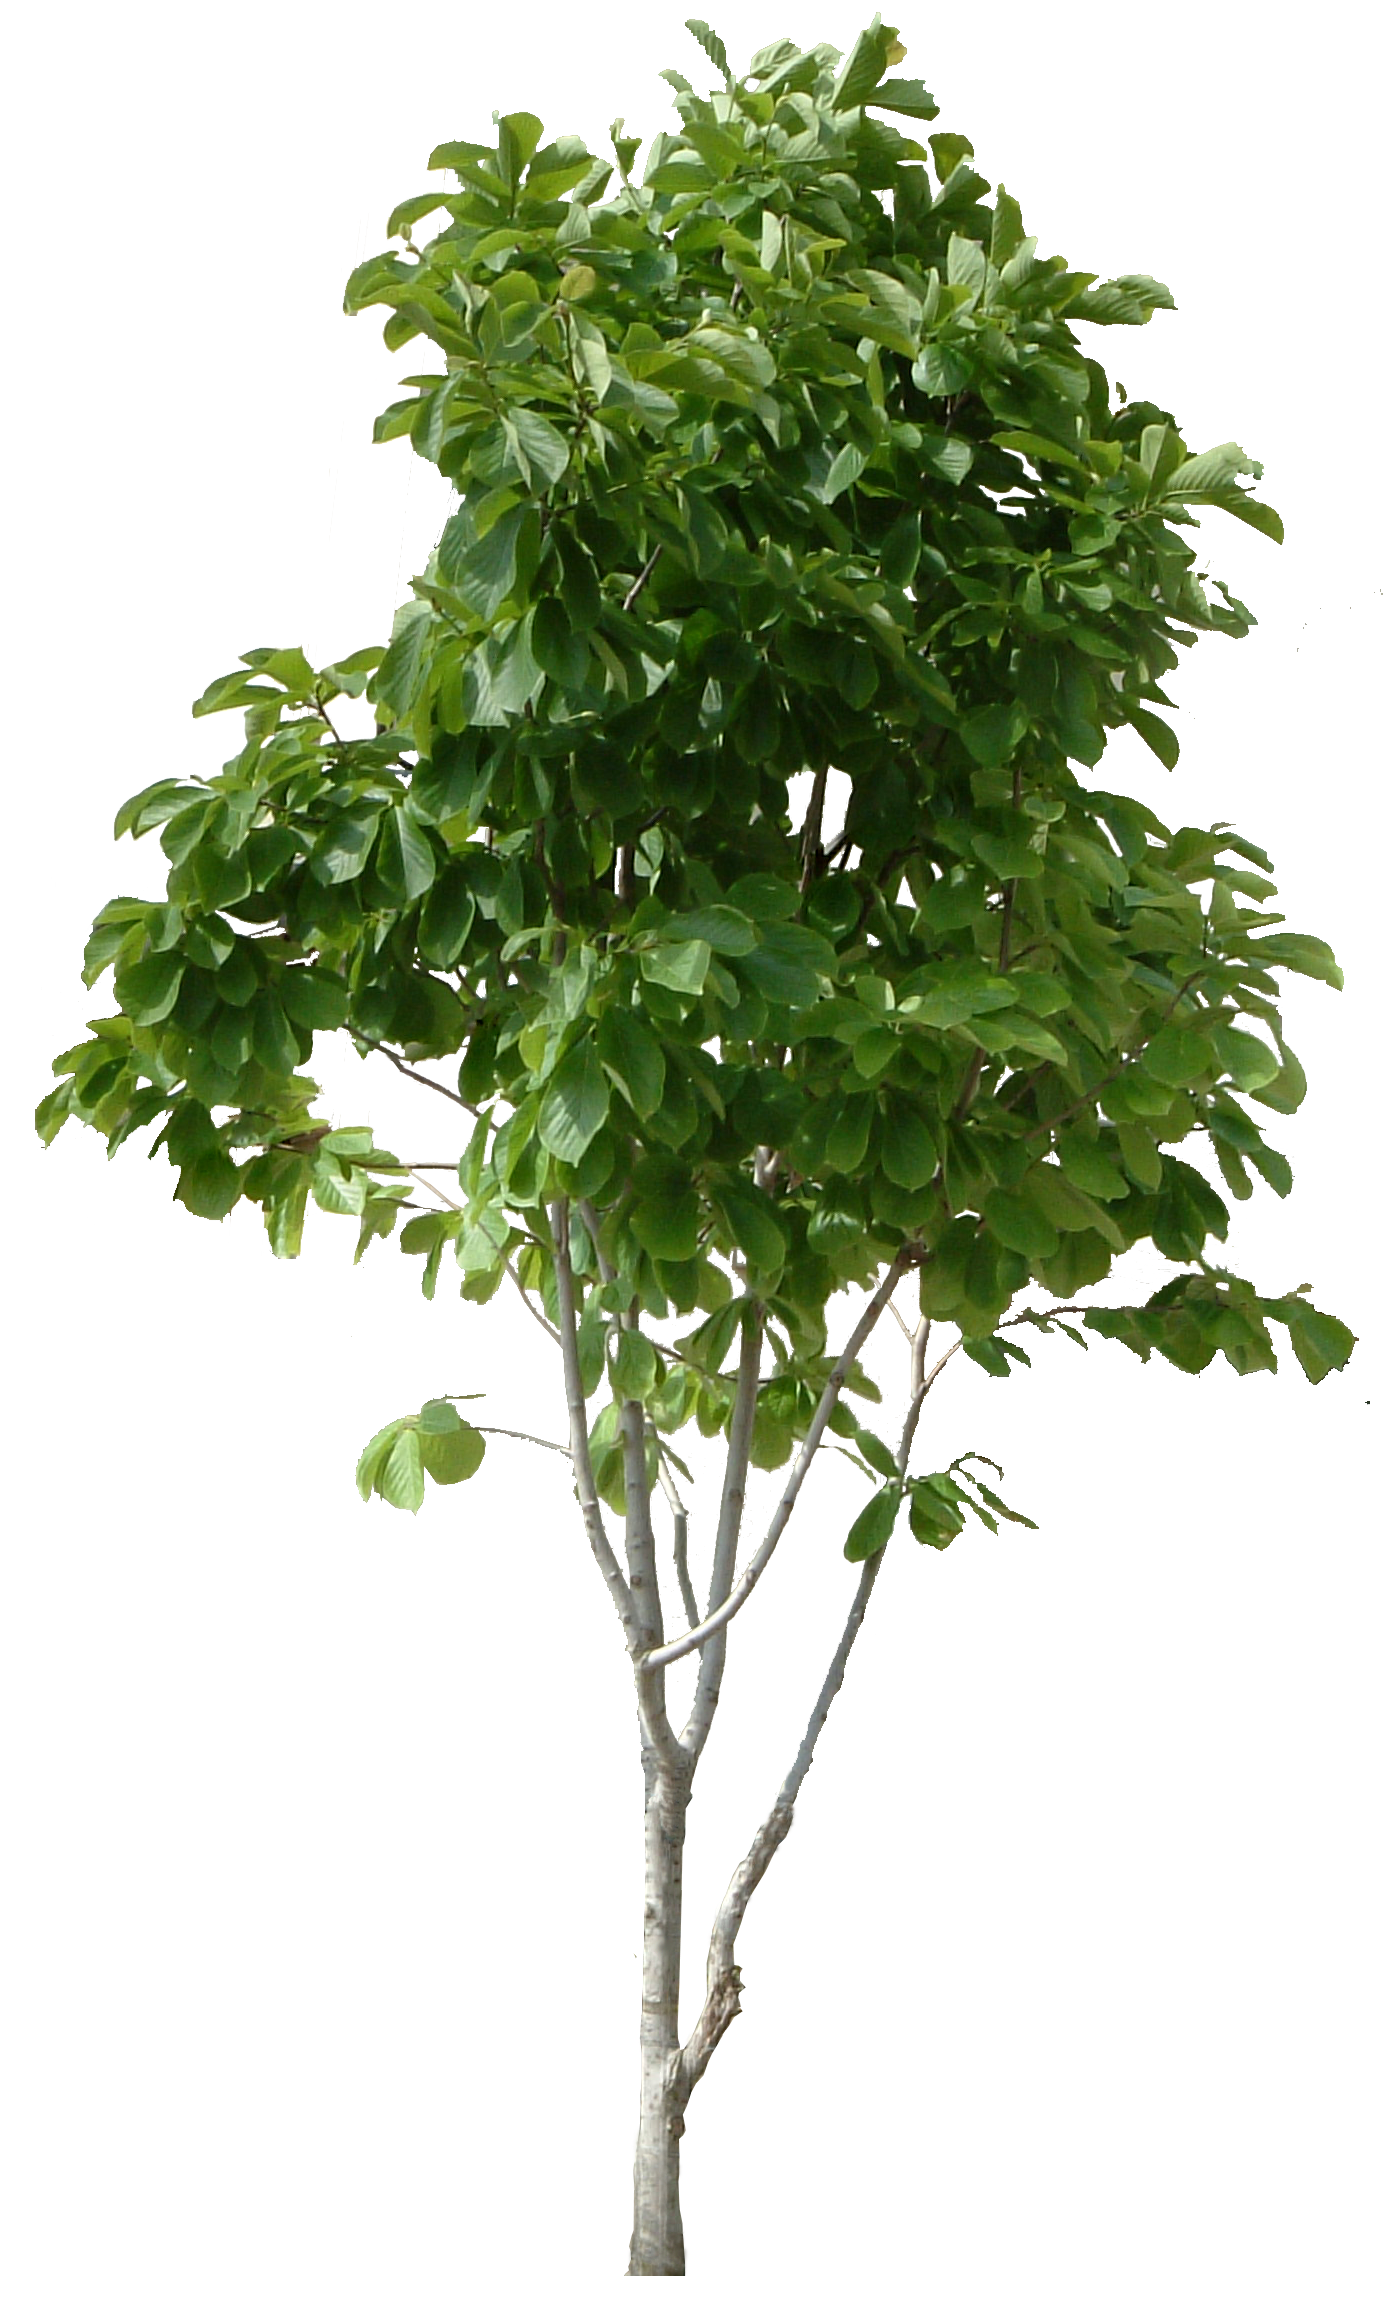 Hd Tree Png Cool Tree Image 6416